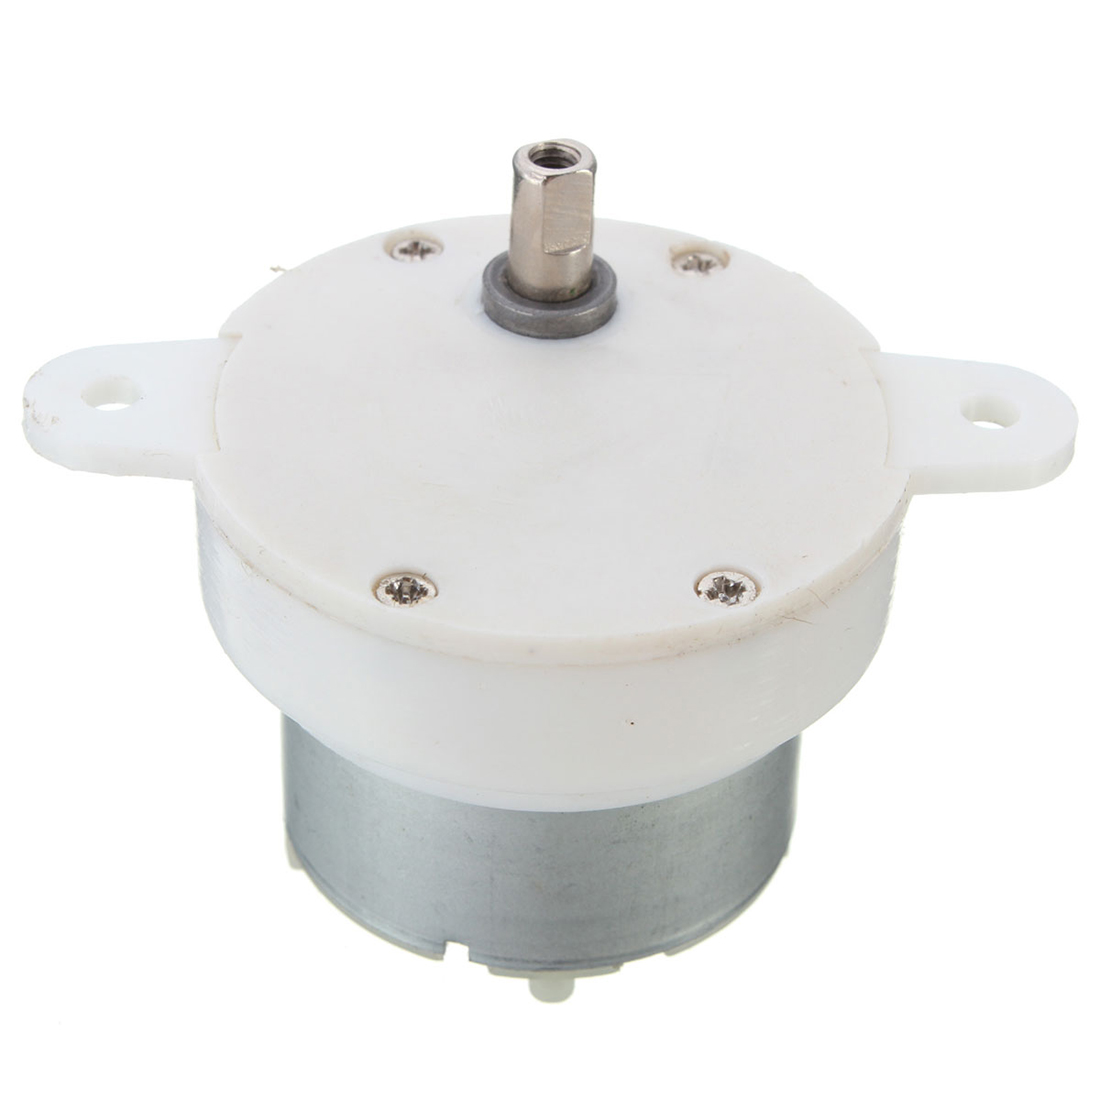 High Torque 12v DC Motor Slow Speed Electric Motor/Gearbox 3RPM 4mm Shaft Diameter Micro Motor Gearbox Slow Down Mute Mini Motor dc 6v 24v high speed micro motor 130 type shaft diameter 2mm 2pcs for smart car ship models